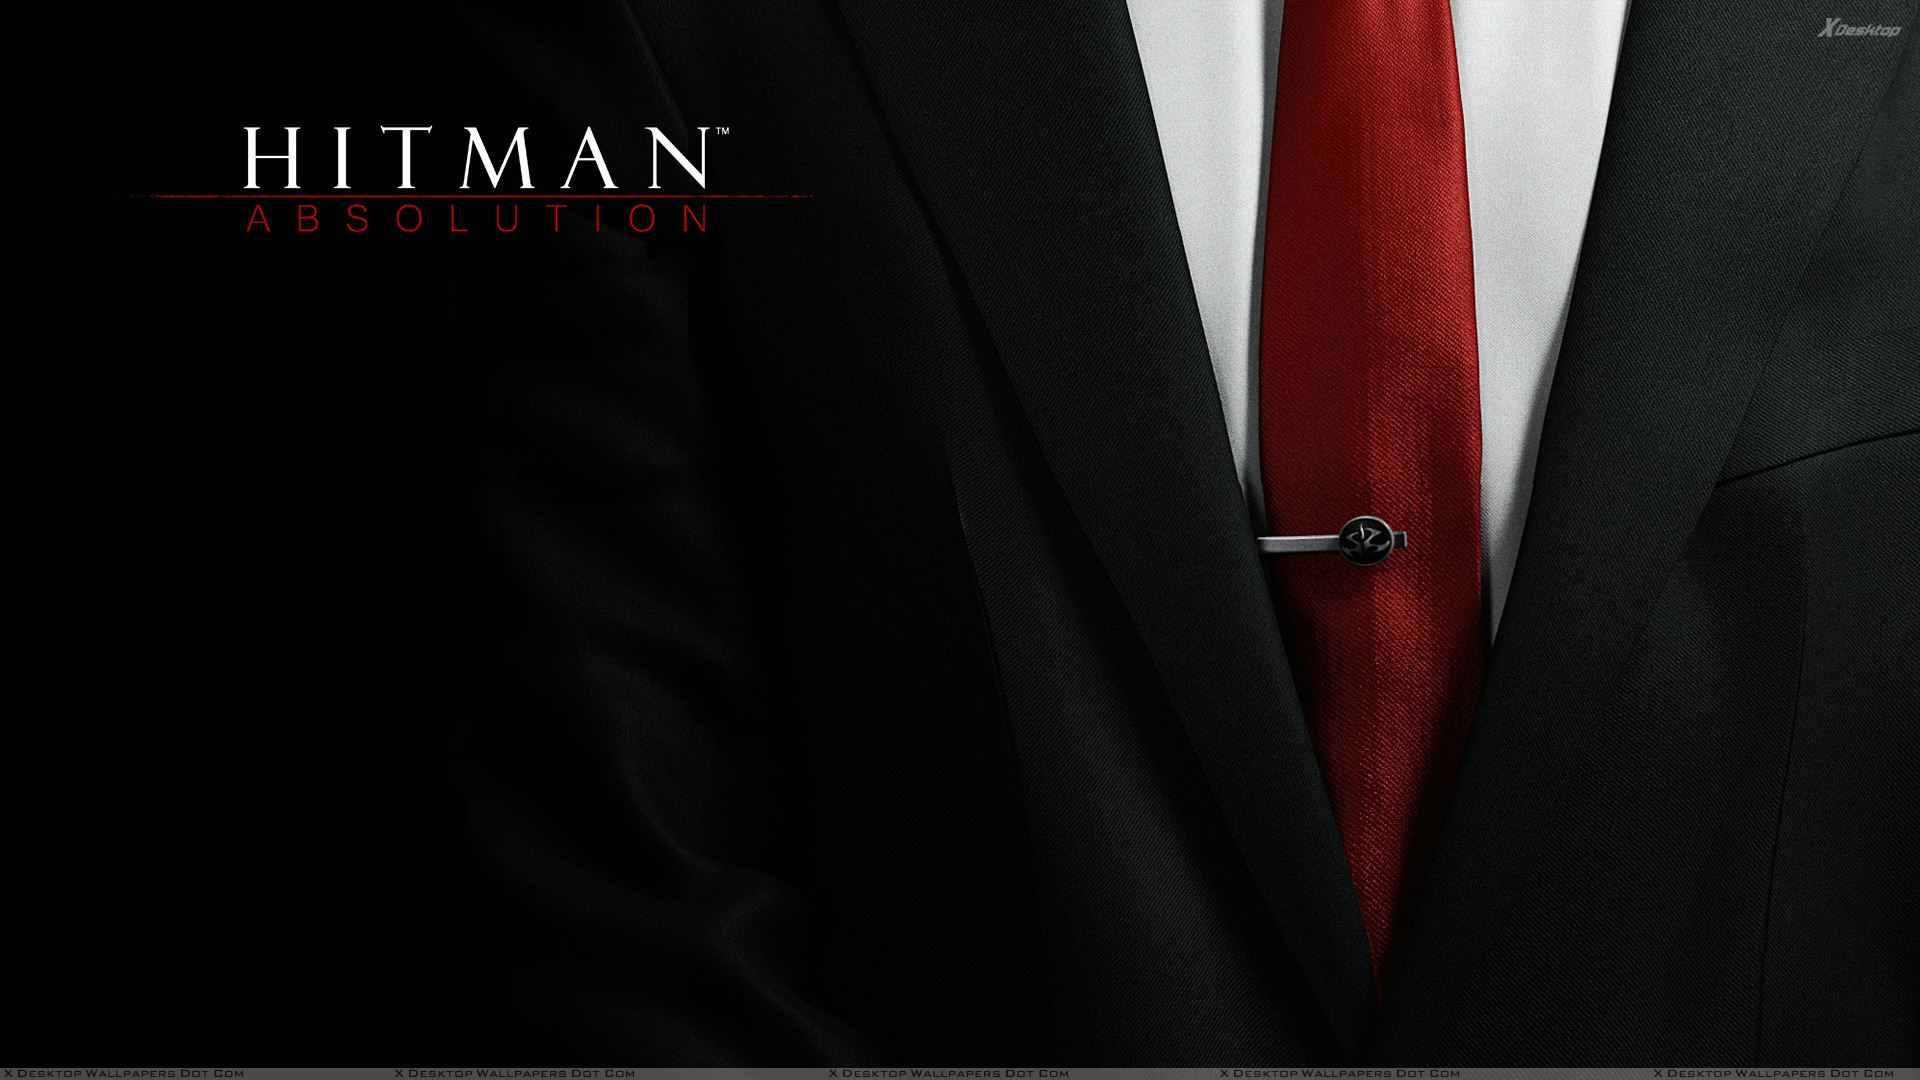 Hitman Absolution Wallpapers Photos amp Images in HD 1920x1080